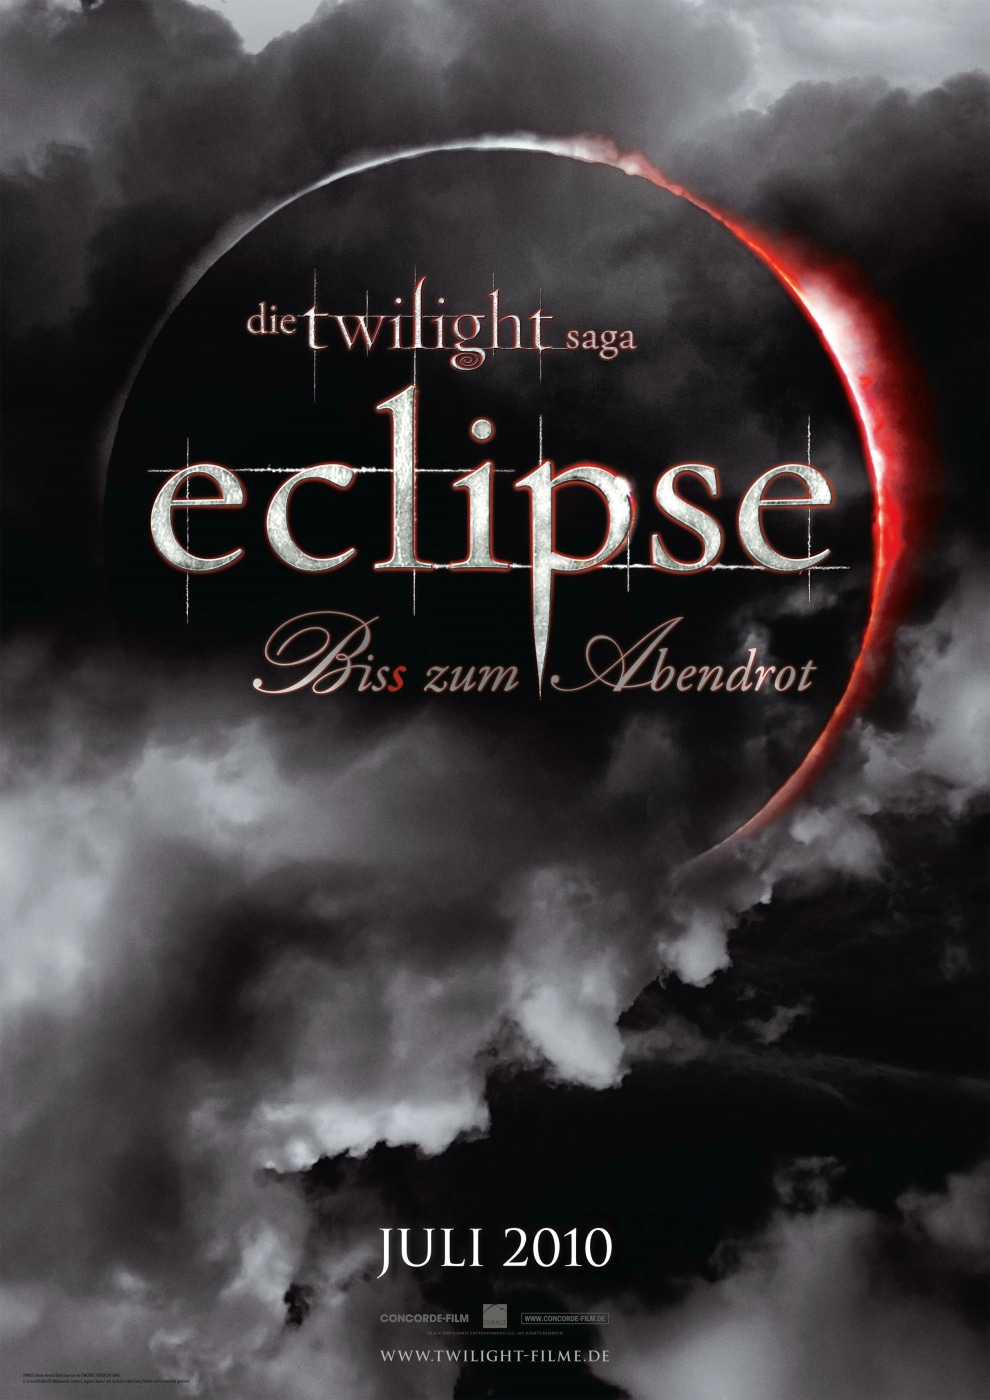 Twilight 3 - Eclipse - Plakat